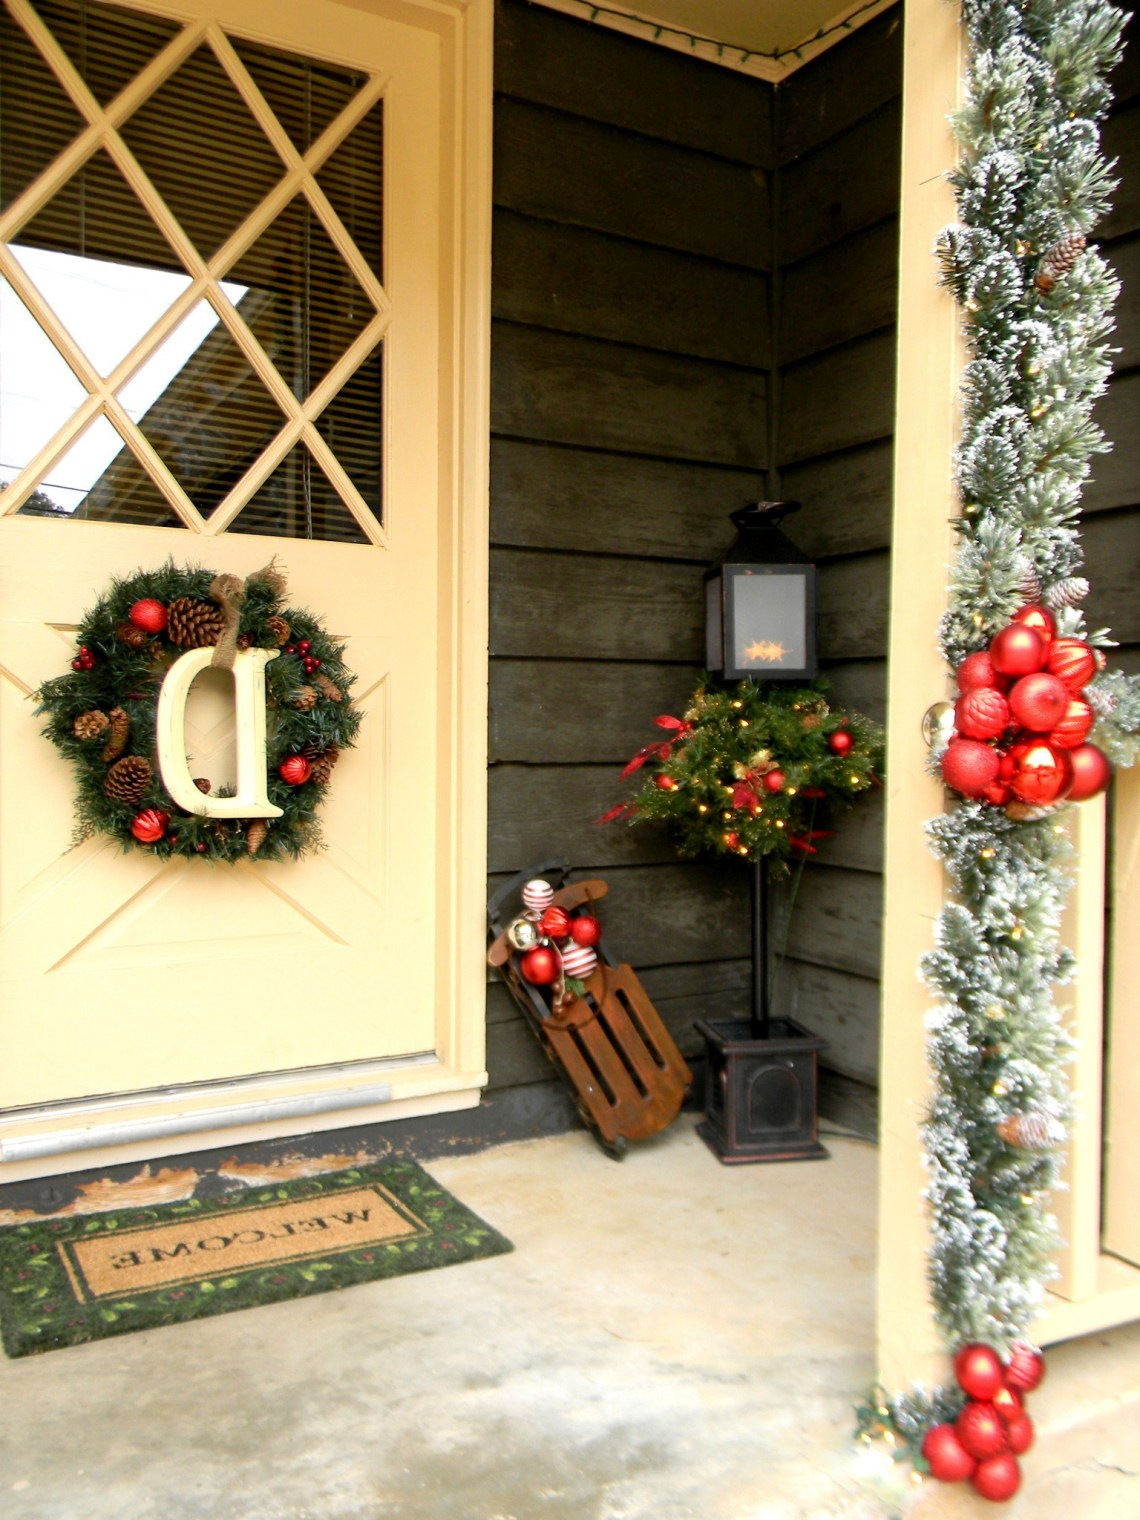 30 Captivating Decorating Front Porch For Christmas Home